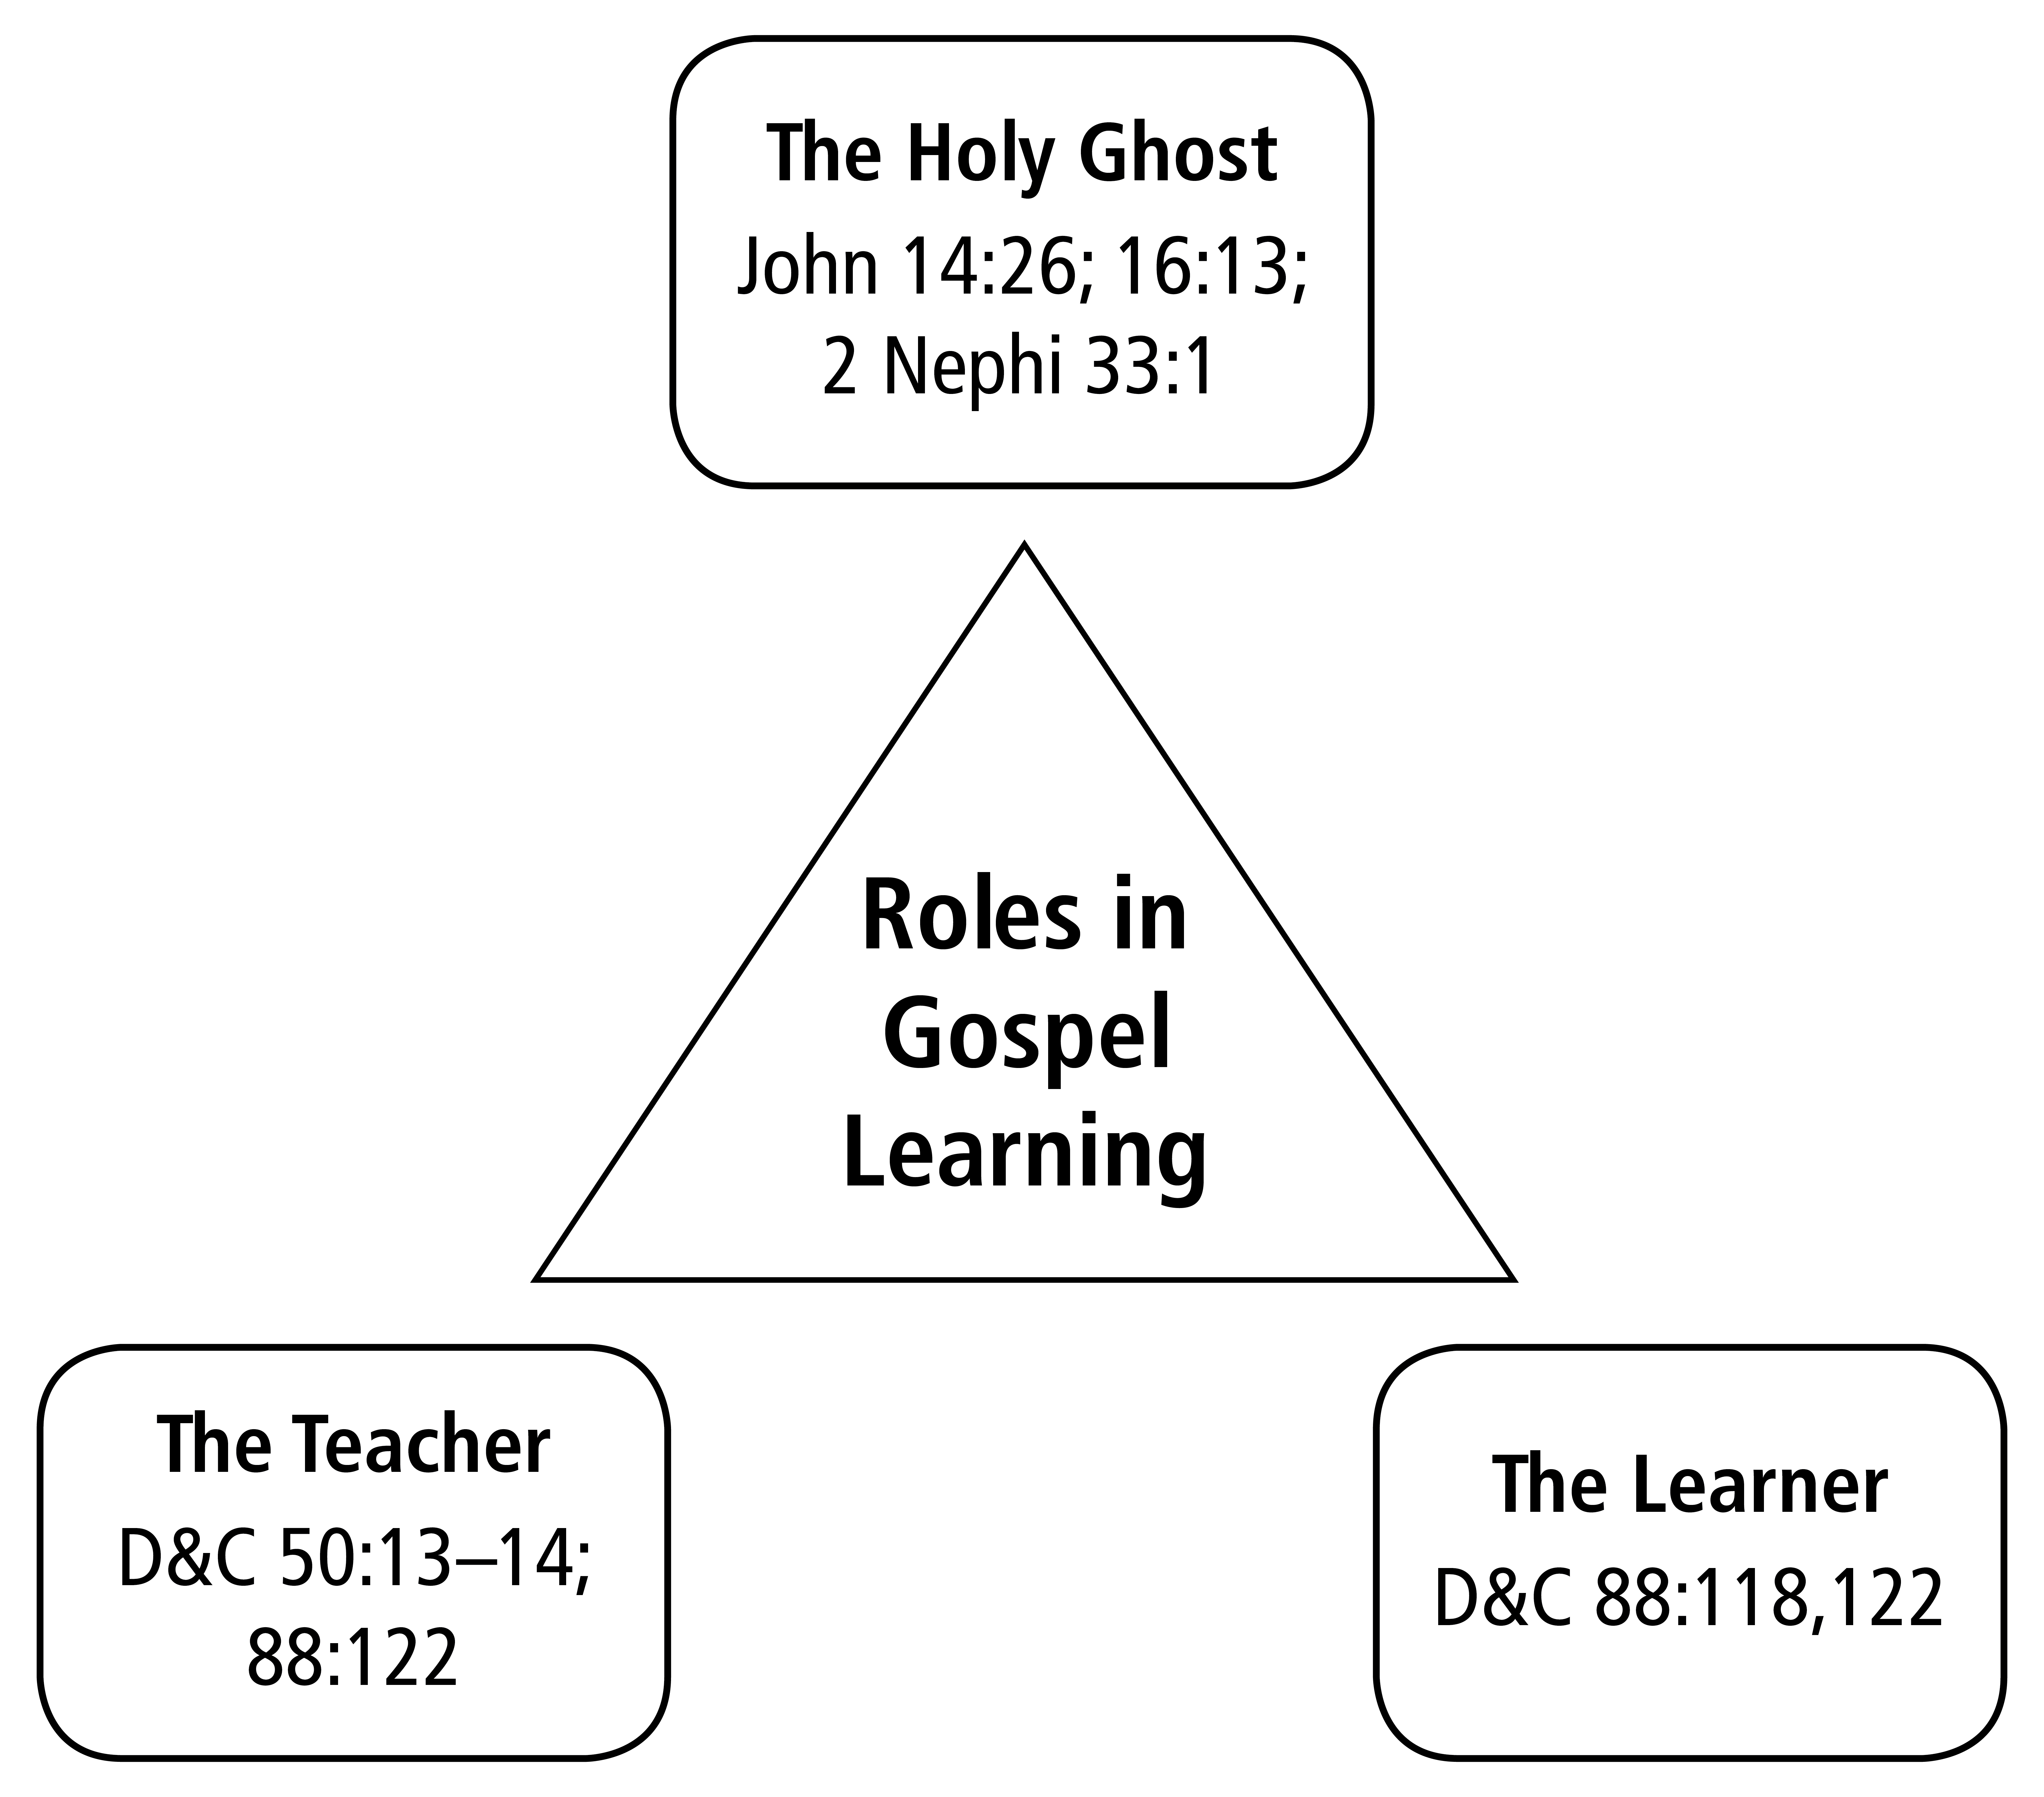 A diagram outlining the roles of the Holy Ghost, the teacher, and the learner in gospel learning.